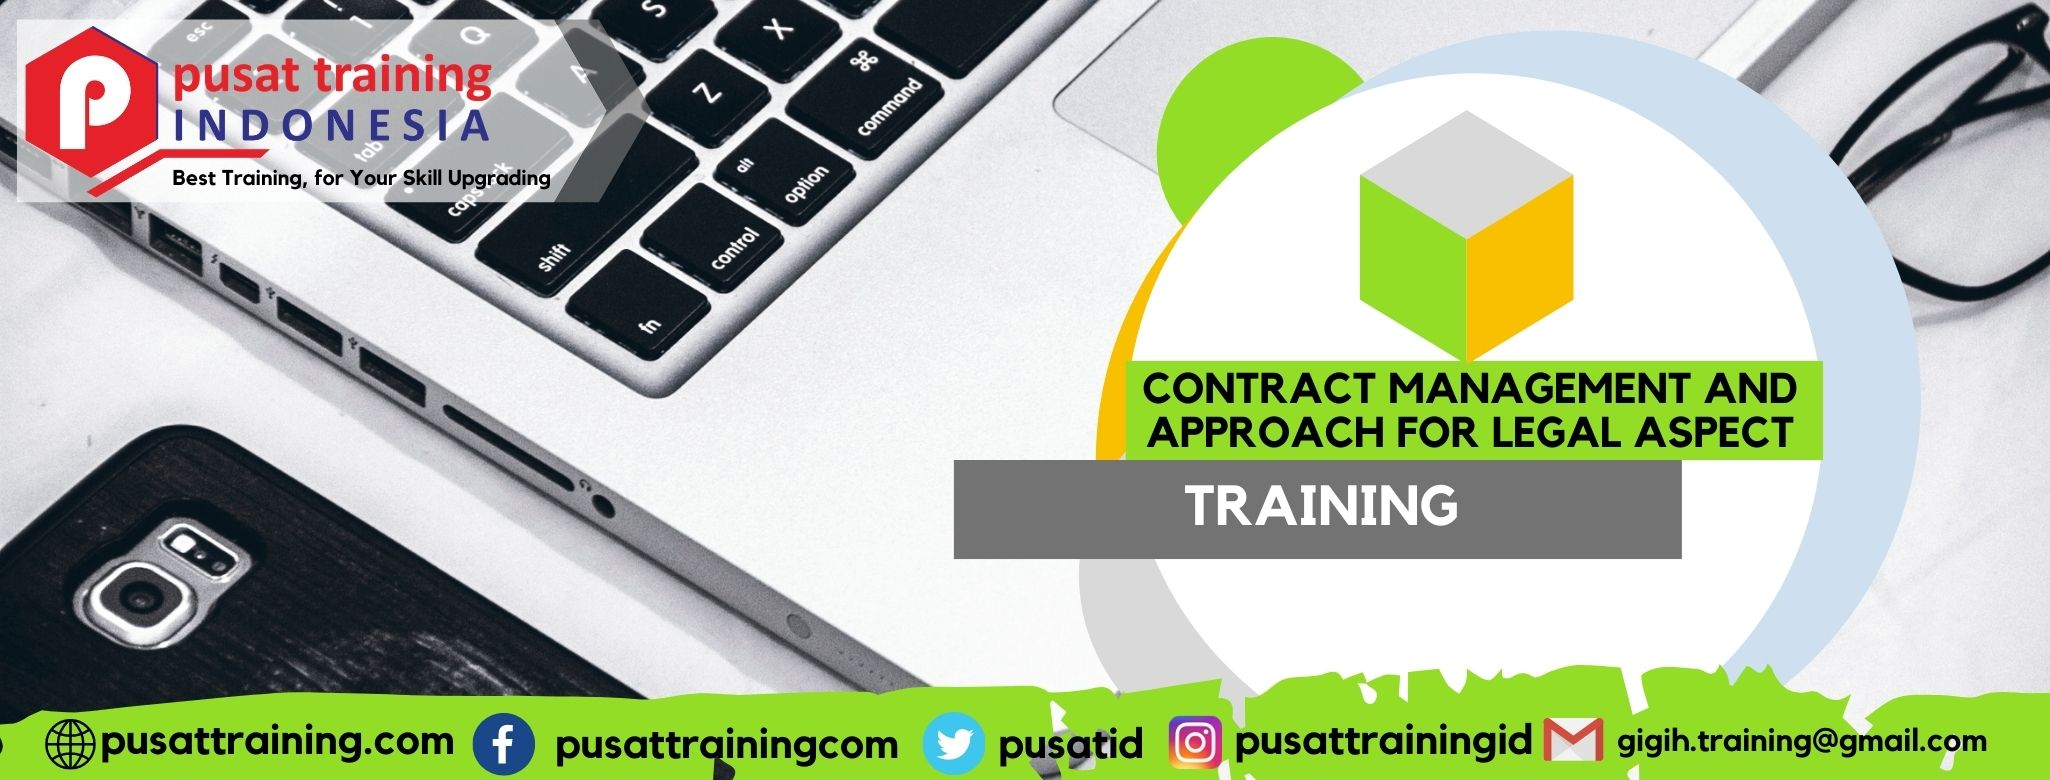 CONTRACT MANAGEMENT AND APPROACH FOR LEGAL ASPECT TRAINING